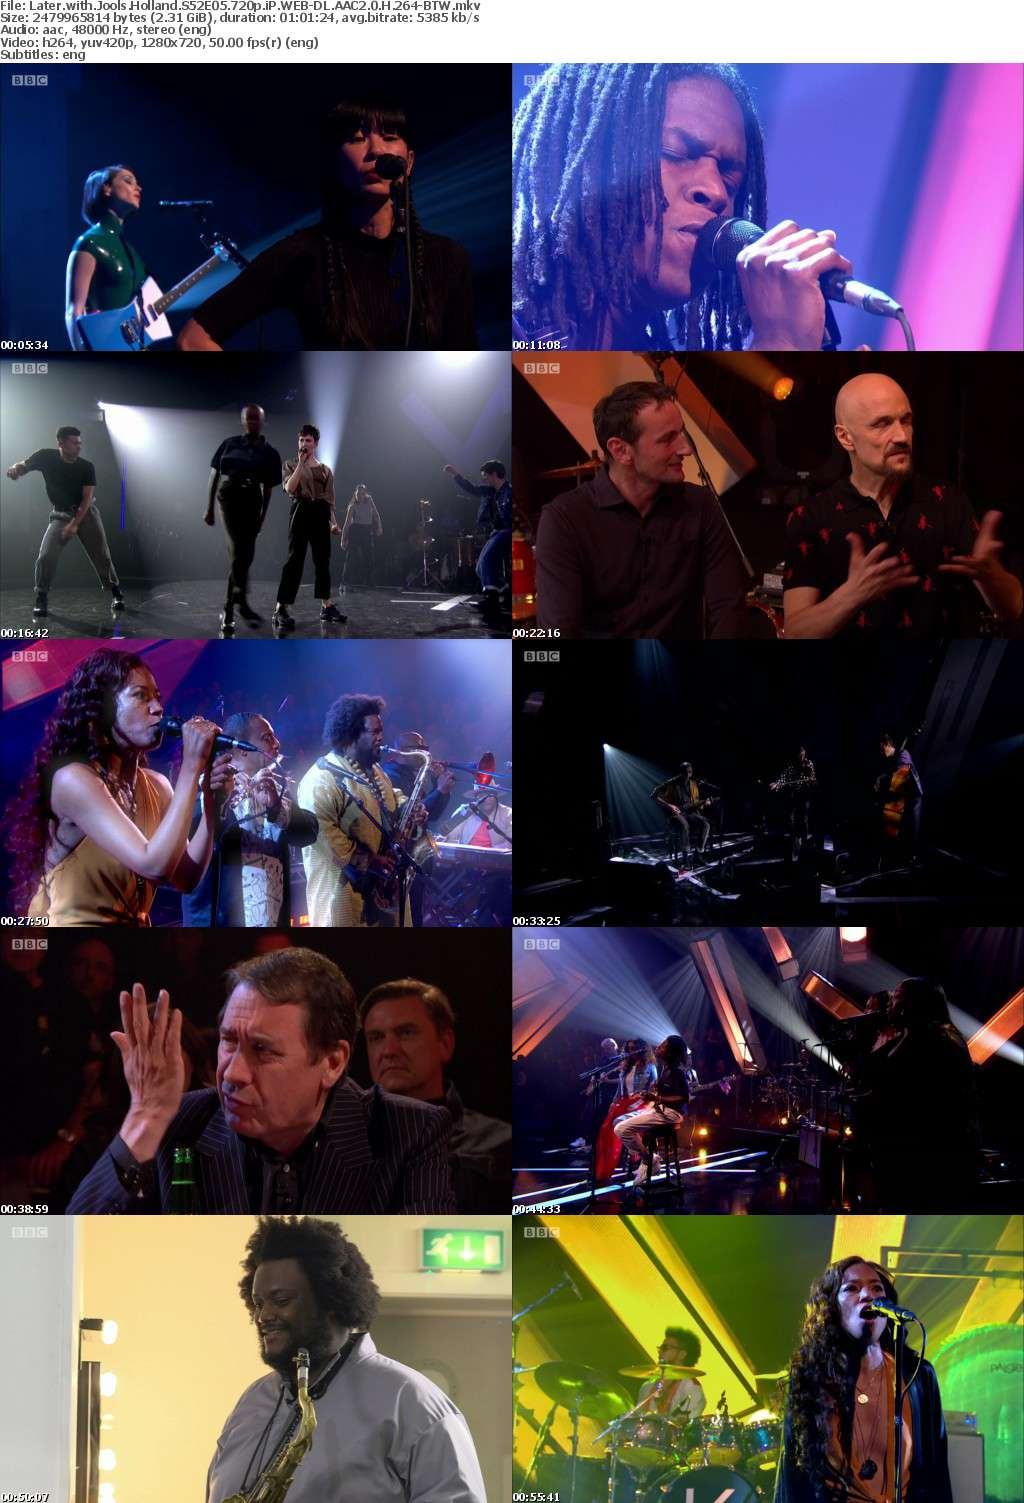 Later with Jools Holland S52E05 720p iP WEB-DL AAC2 0 H 264-BTW